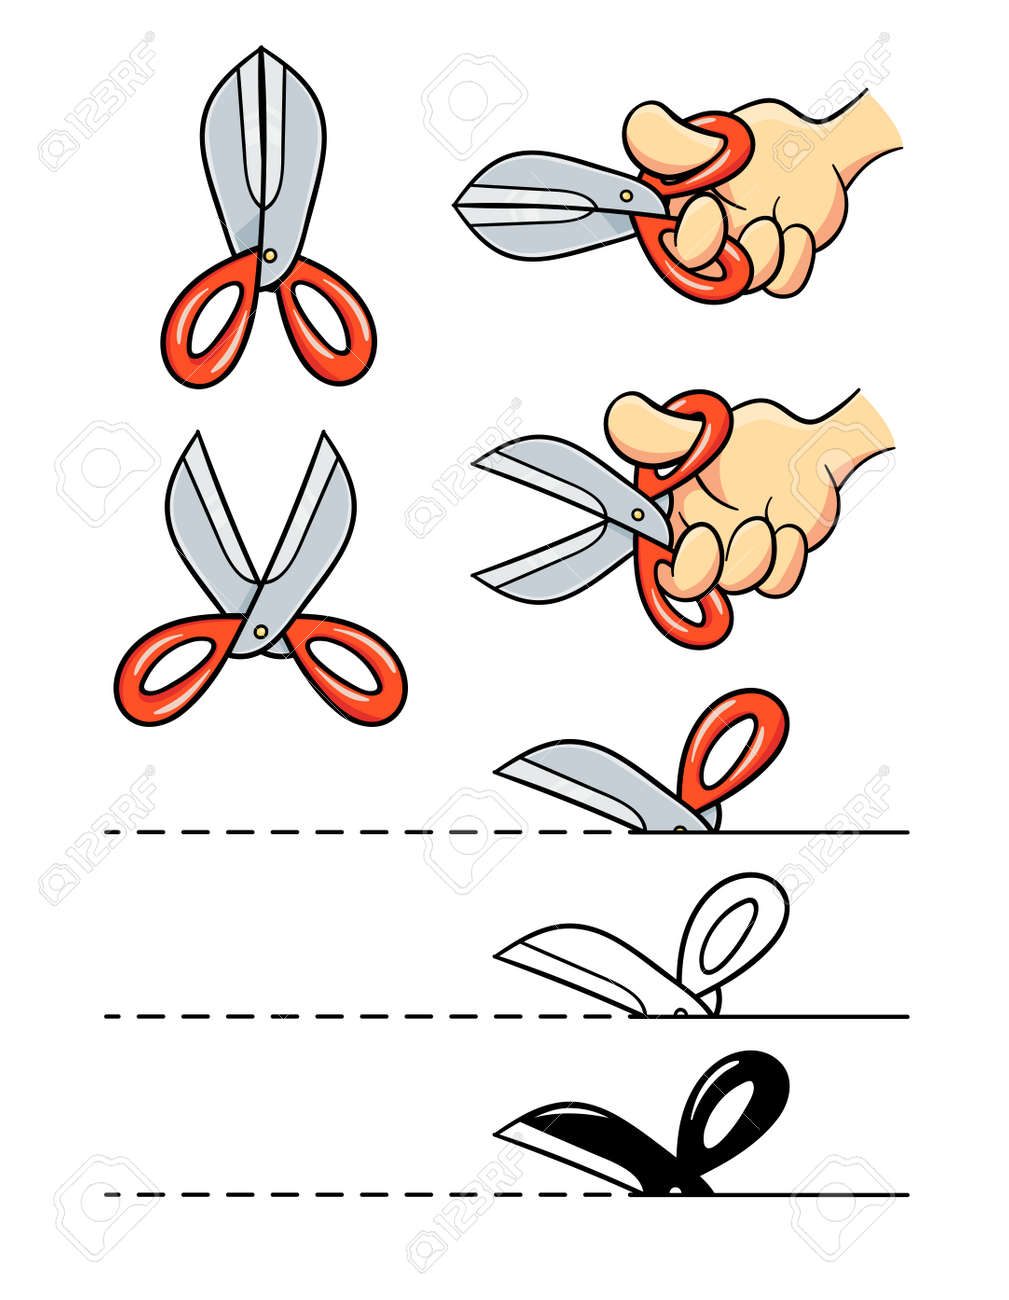 Scissors in arm cut paper. Design element. Cartoon. Set, Isolated on white background. Eps10 vector illustration. - 170190487